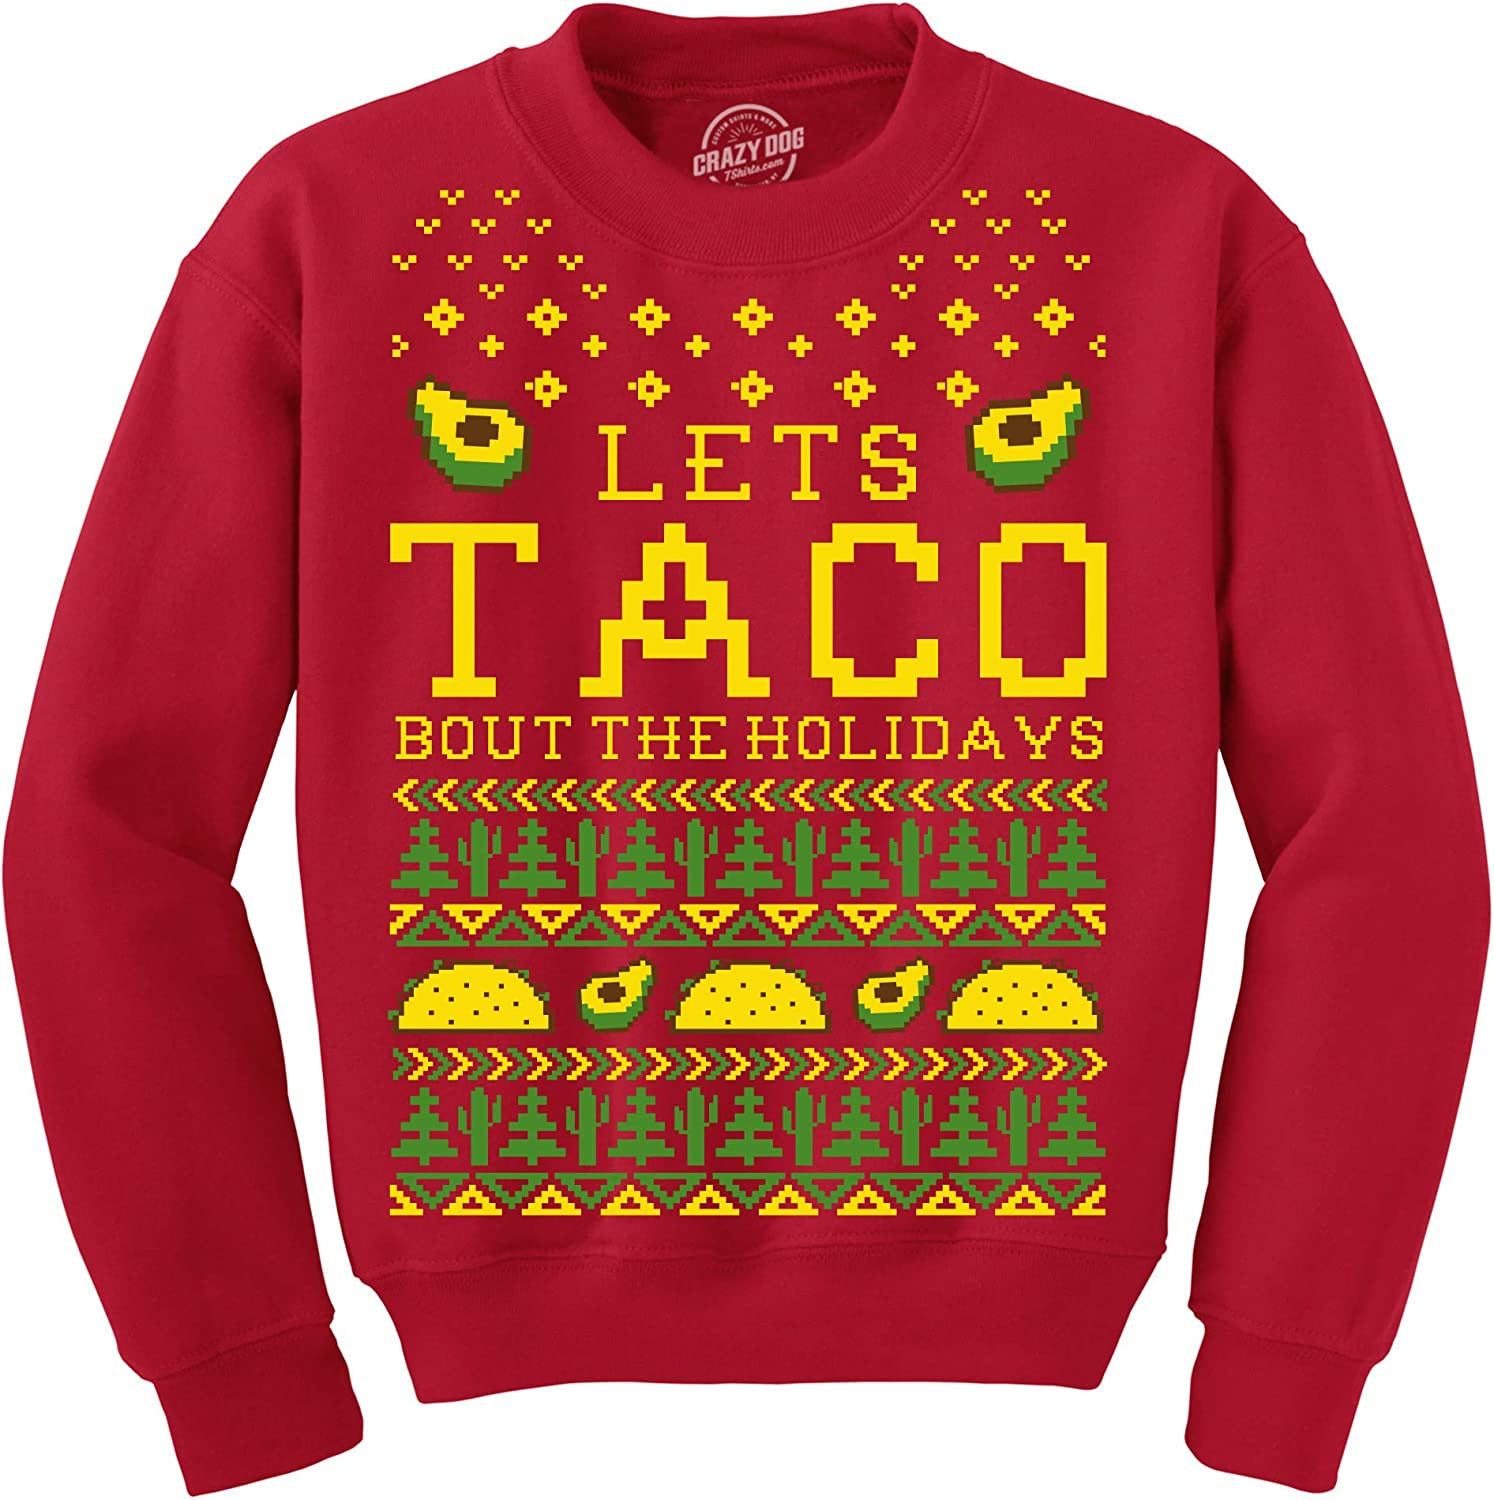 Crazy Dog T-Shirts Sweatshirt Lets Taco Bout The Holidays Christmas Ugly Sweater Funny Holiday Top